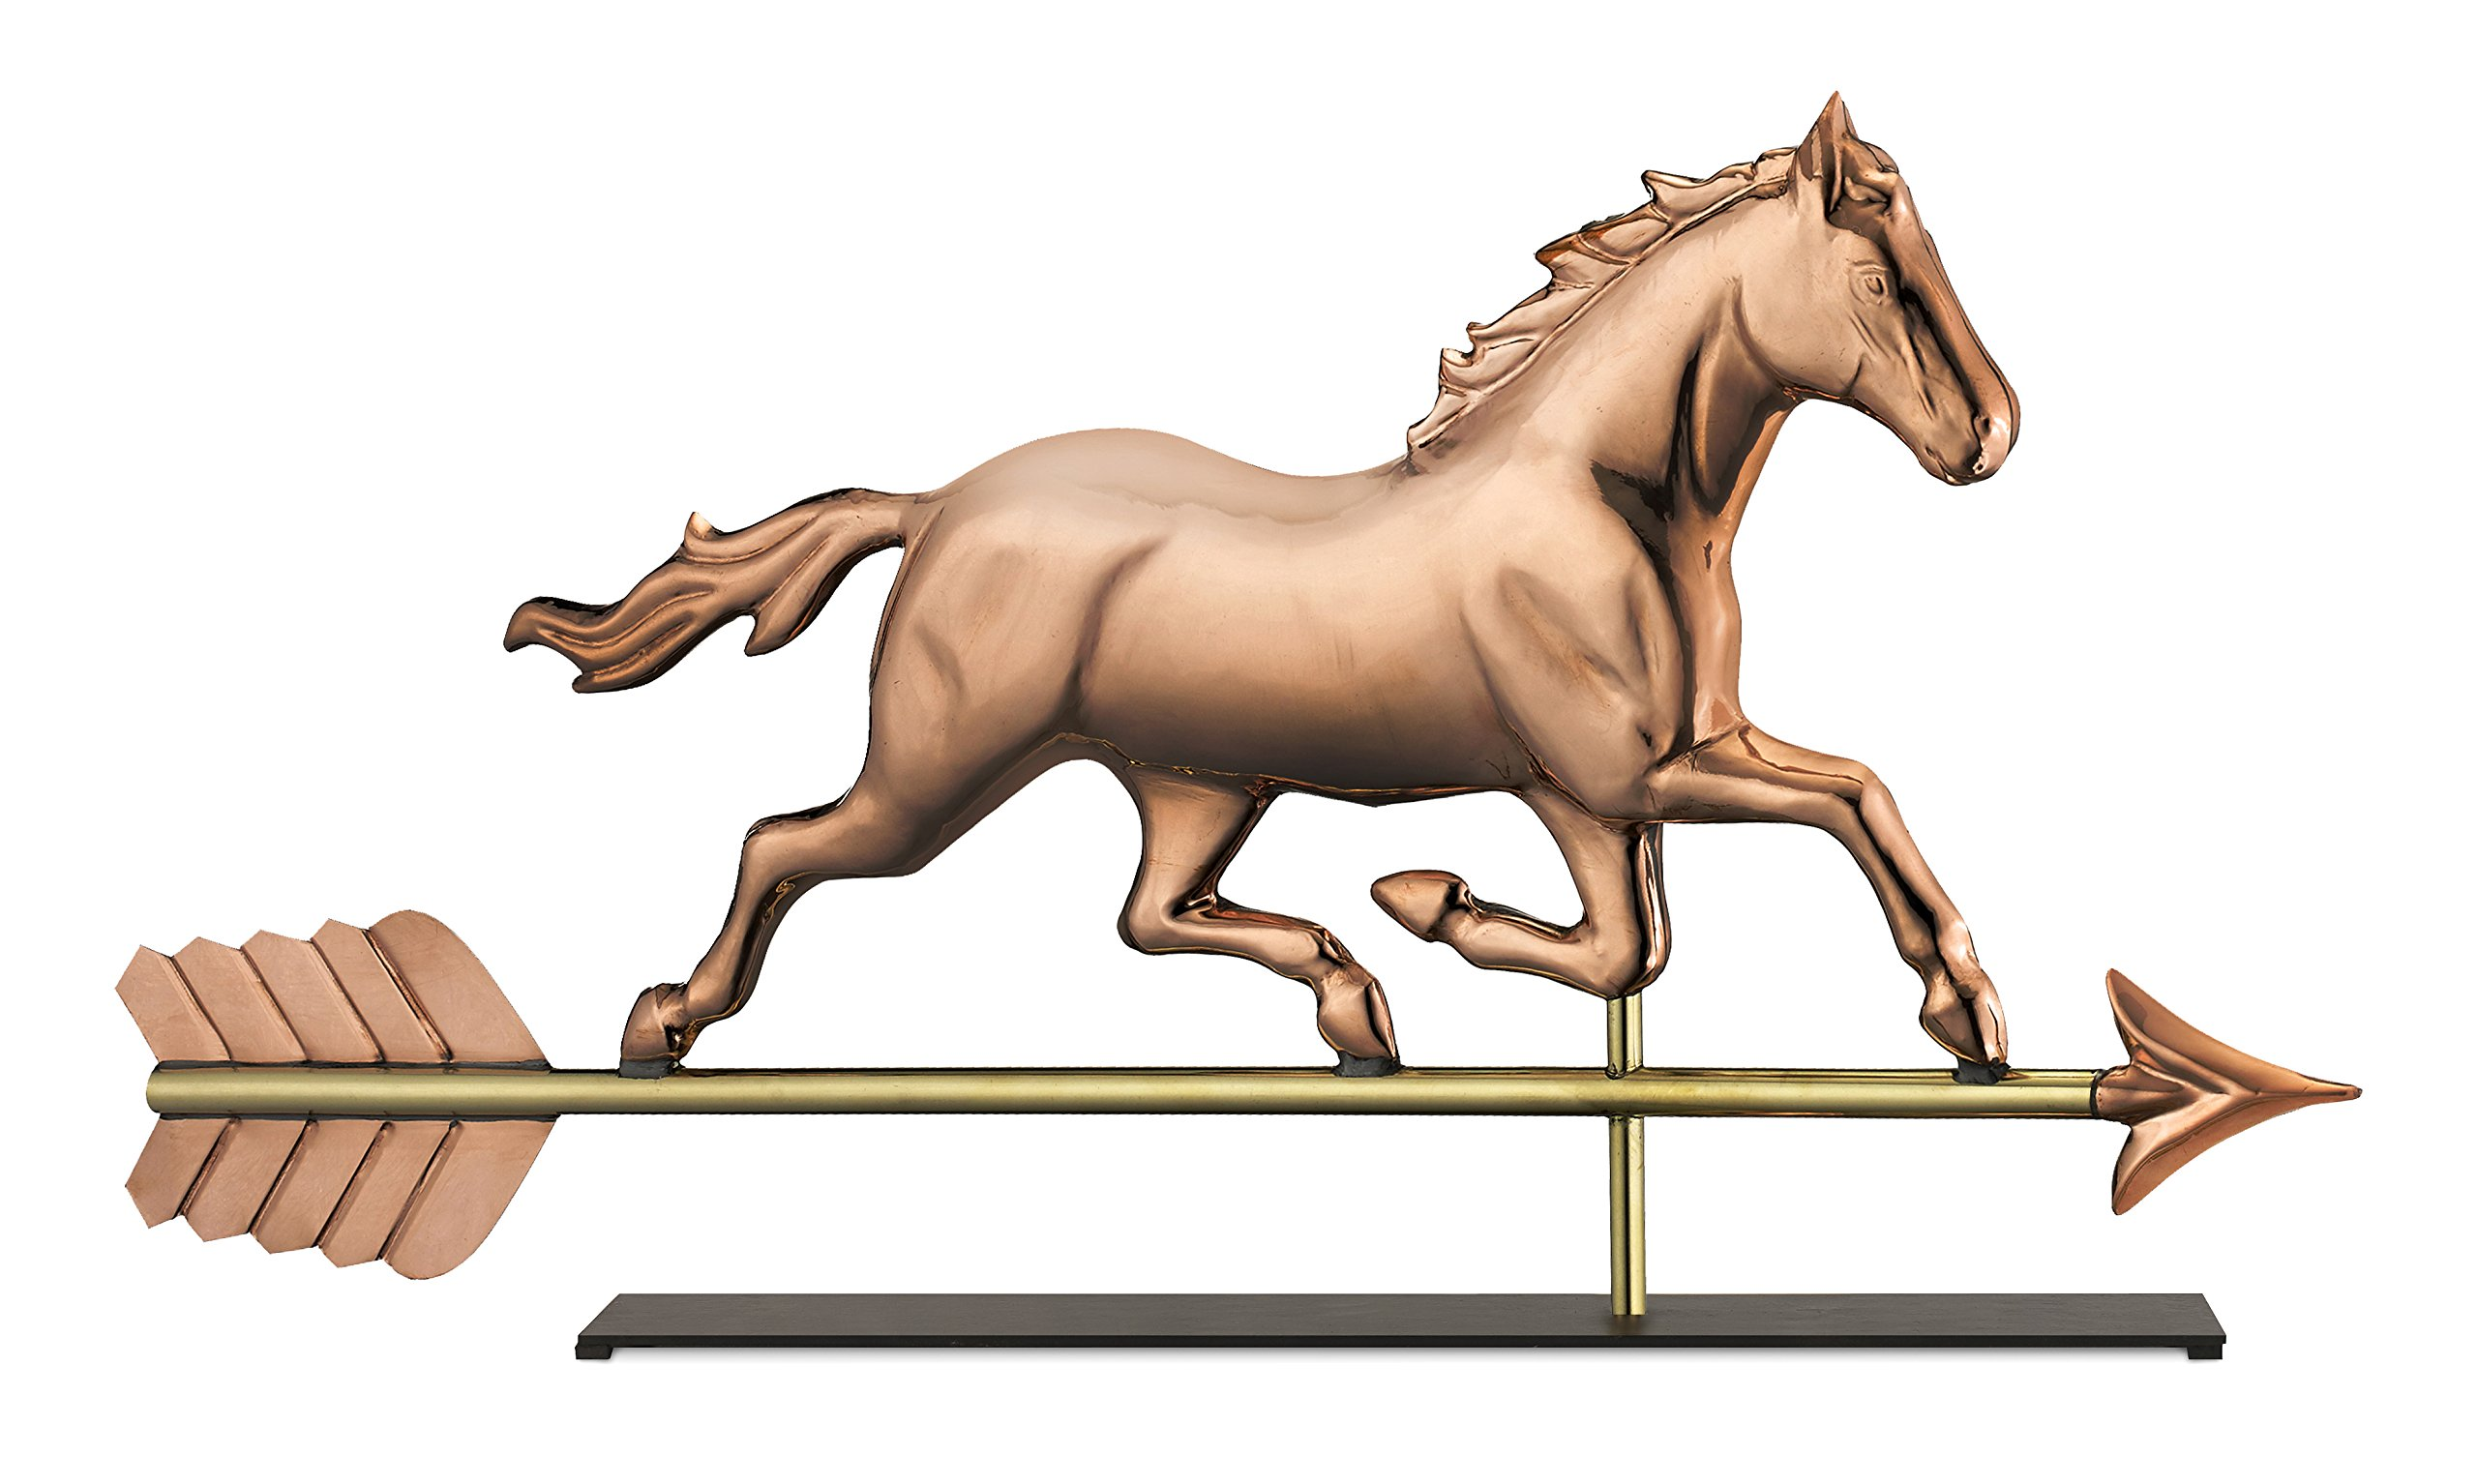 Good Directions Trotting Horse Weathervane Sculpture on Mantel / Fireplace Stand, Pure Copper, Equestrianl Home Décor, Tabletop Accent